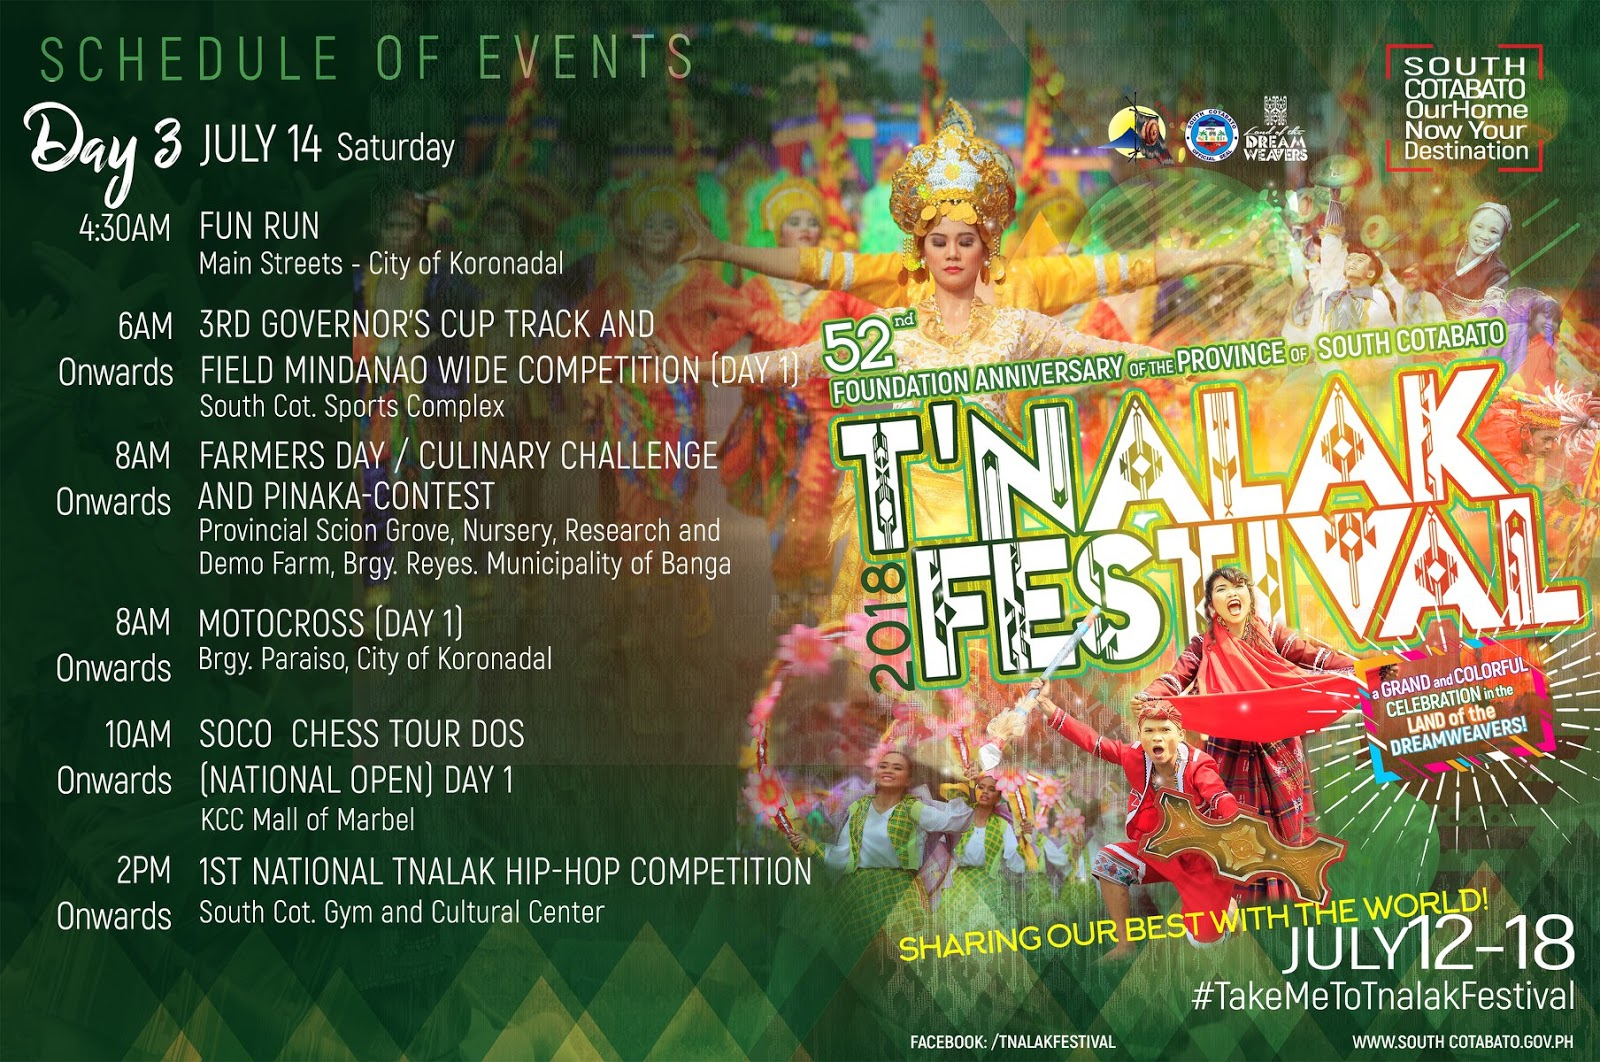 Tnalak Festival na naman! See schedule of activities here